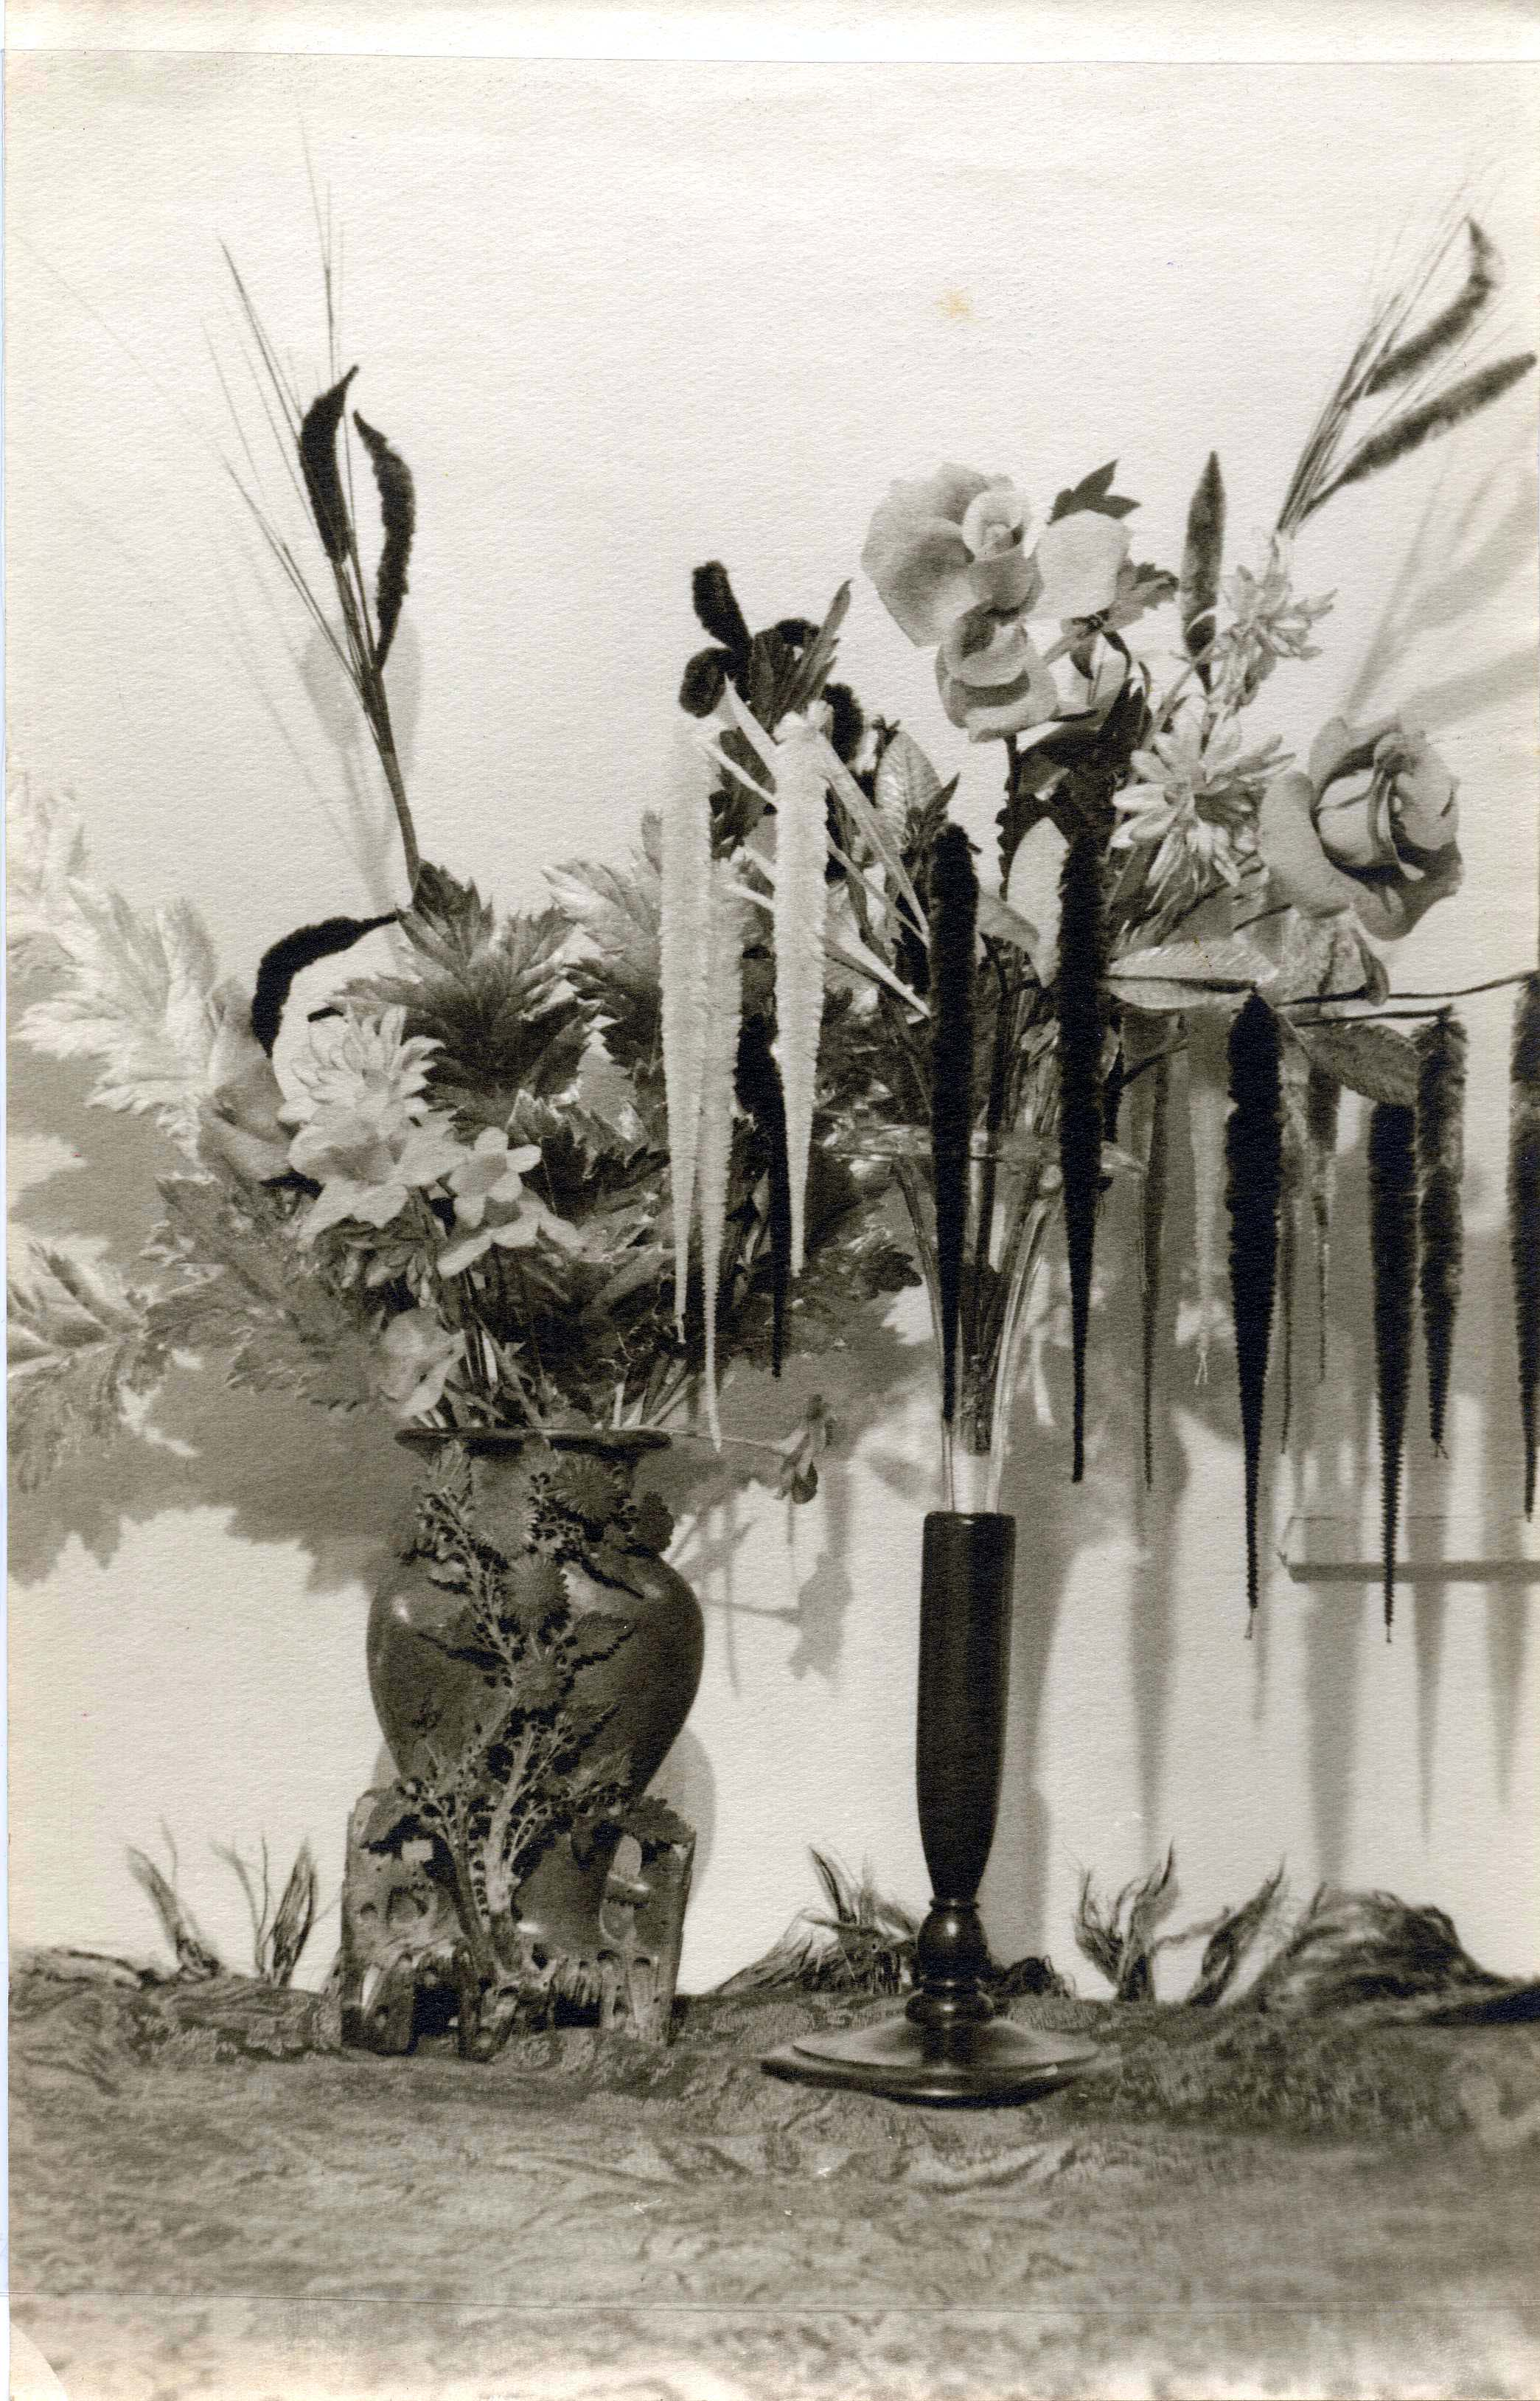 Eugene Von Bruenchenhein (American, 1910-1983).  Untitled (Floral still-life; interior of home) , n.d. Gelatin silver print, 11 x 7 in. Intuit: The Center for Intuitive and Outsider Art, gift of Lewis and Jean Greenblatt, 2005.4.35